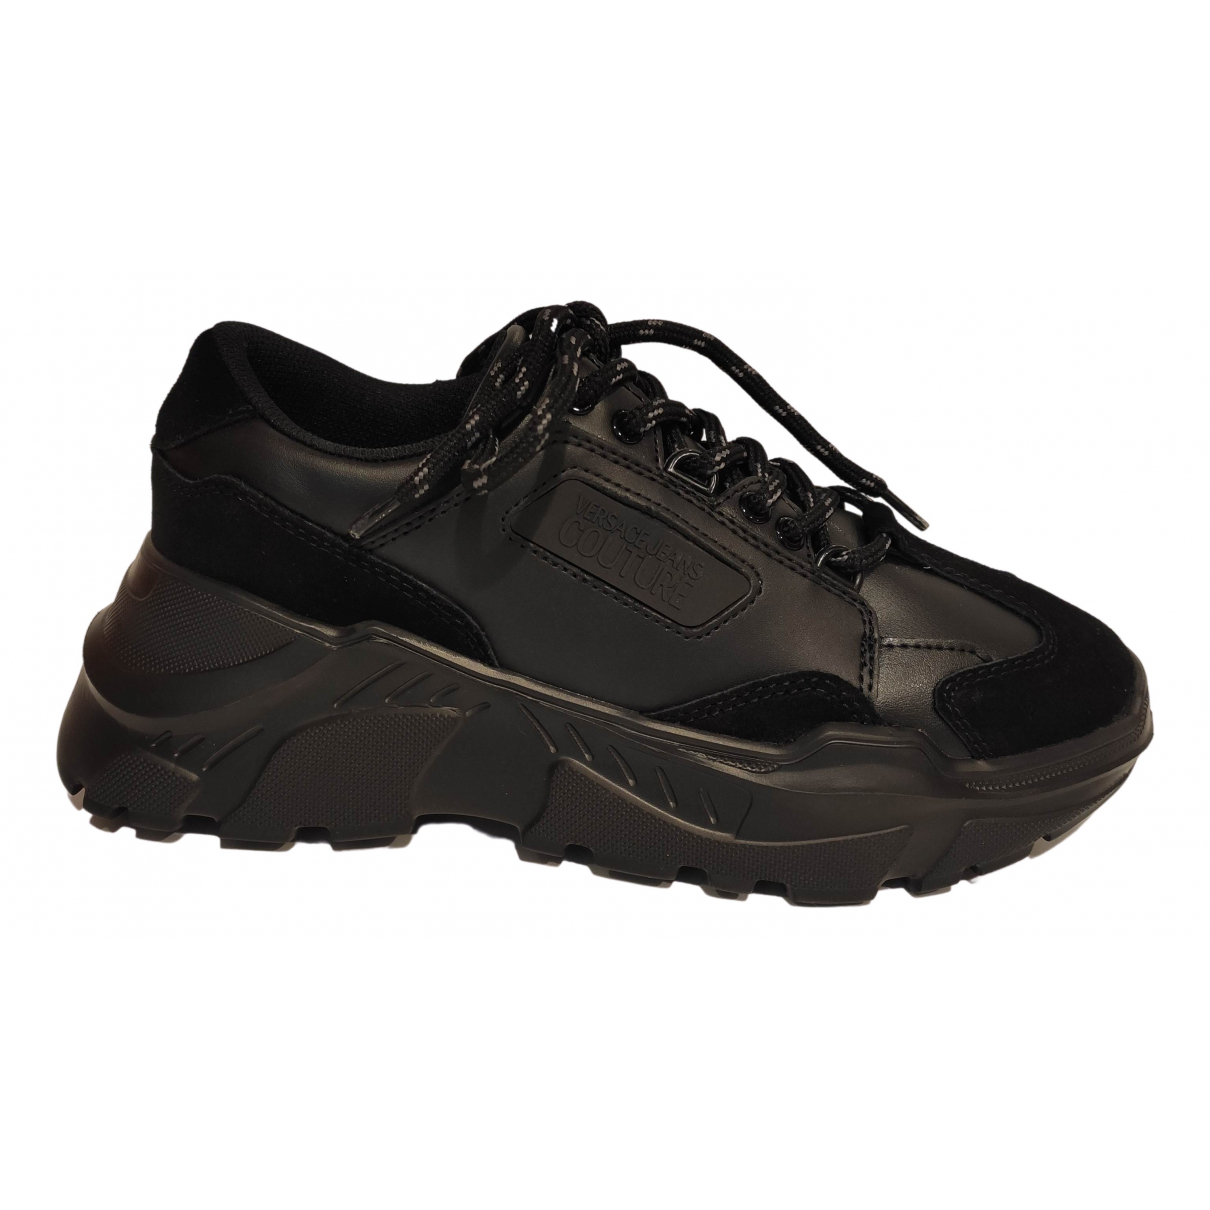 Versace Jeans N Black Leather Trainers for Men 43 EU